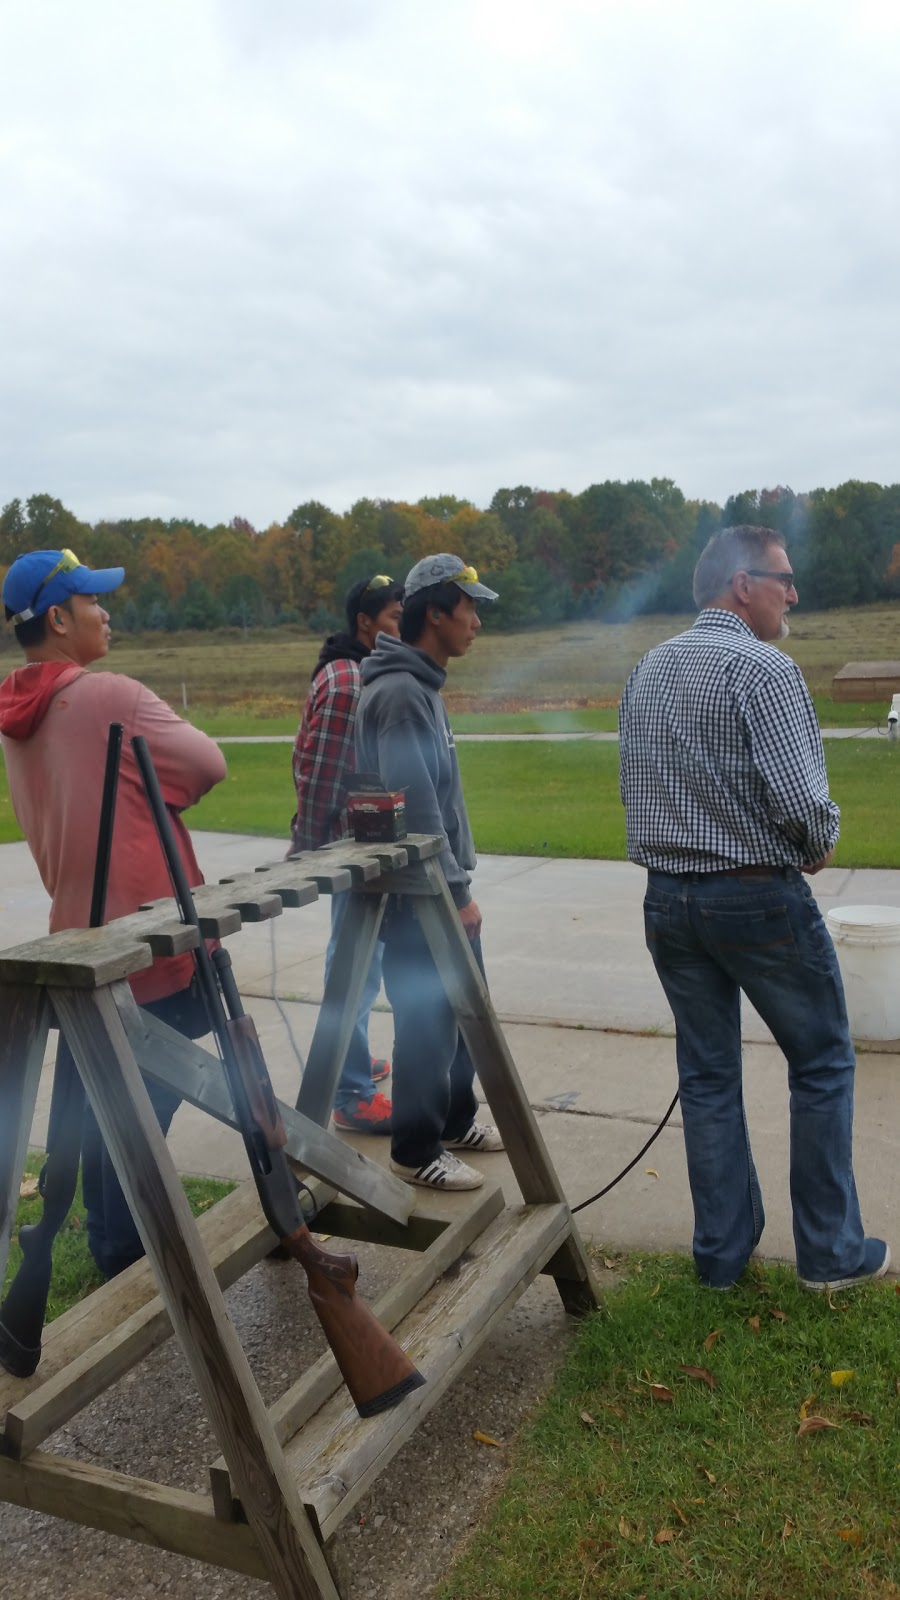 Uxbridge Clays (Skeet, Sporting Clays, International Skeet, Trap, 5 Stand) | point of interest | 5700 Concession 4, Uxbridge, ON L0A 1C0, Canada | 9058525907 OR +1 905-852-5907